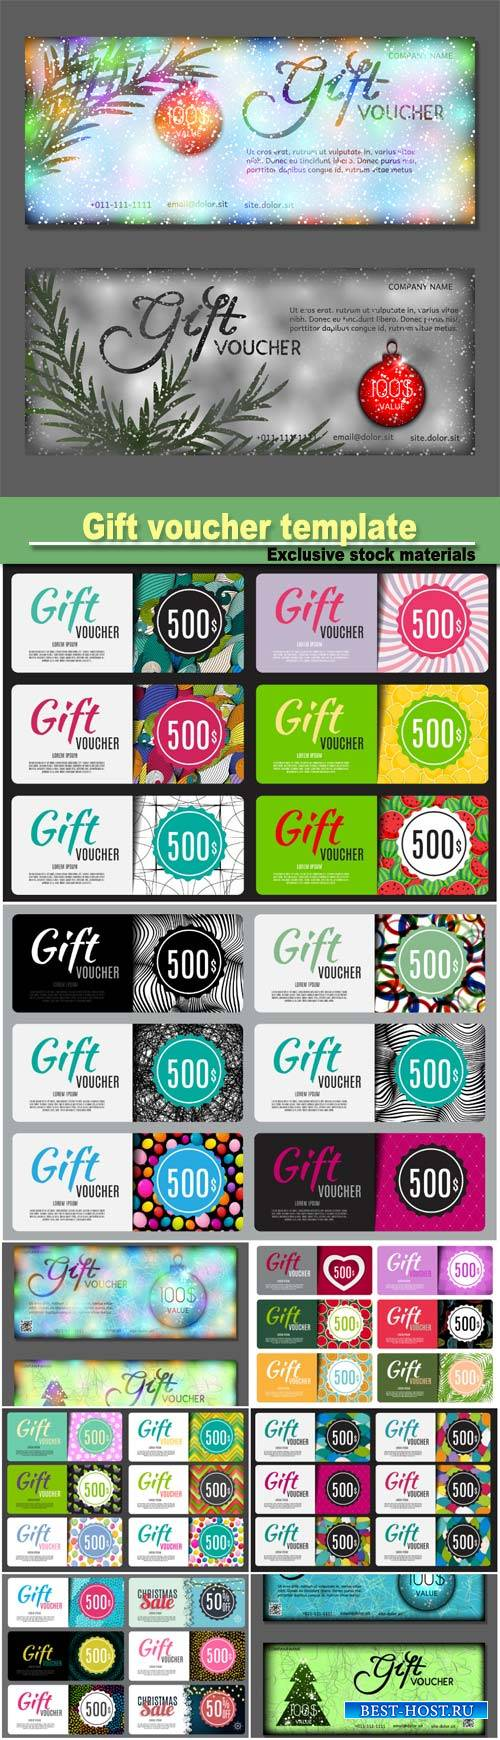 Gift voucher template, vector illustration for your business